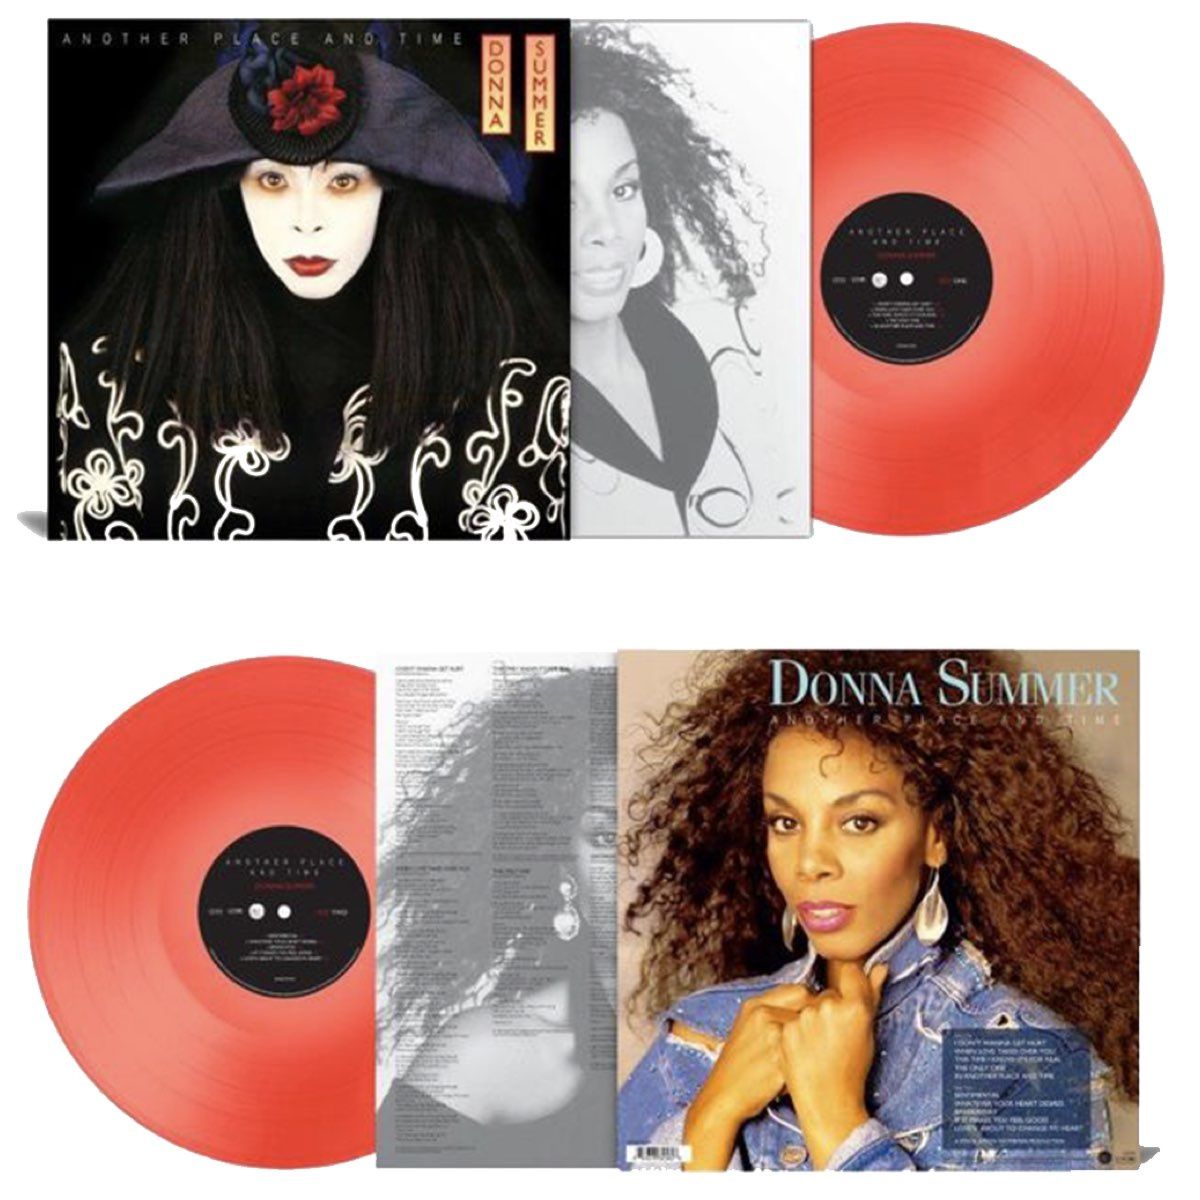 Donna Summer - Another Place And Time [Translucent Red Vinyl]